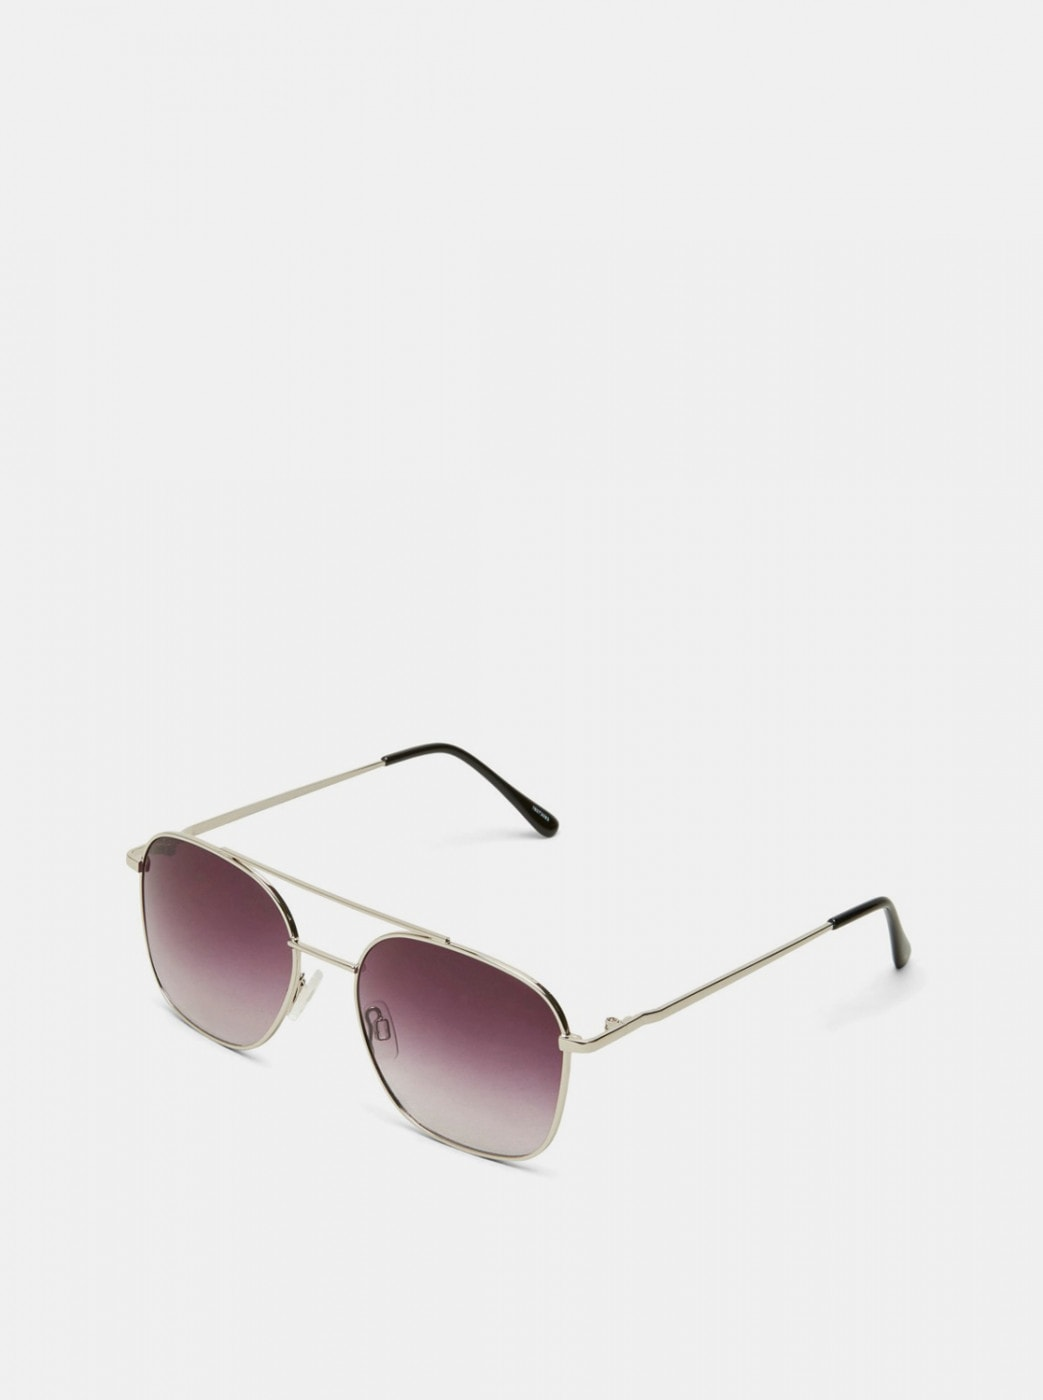 Men's Sunglasses in Silver Selected Homme Lyn